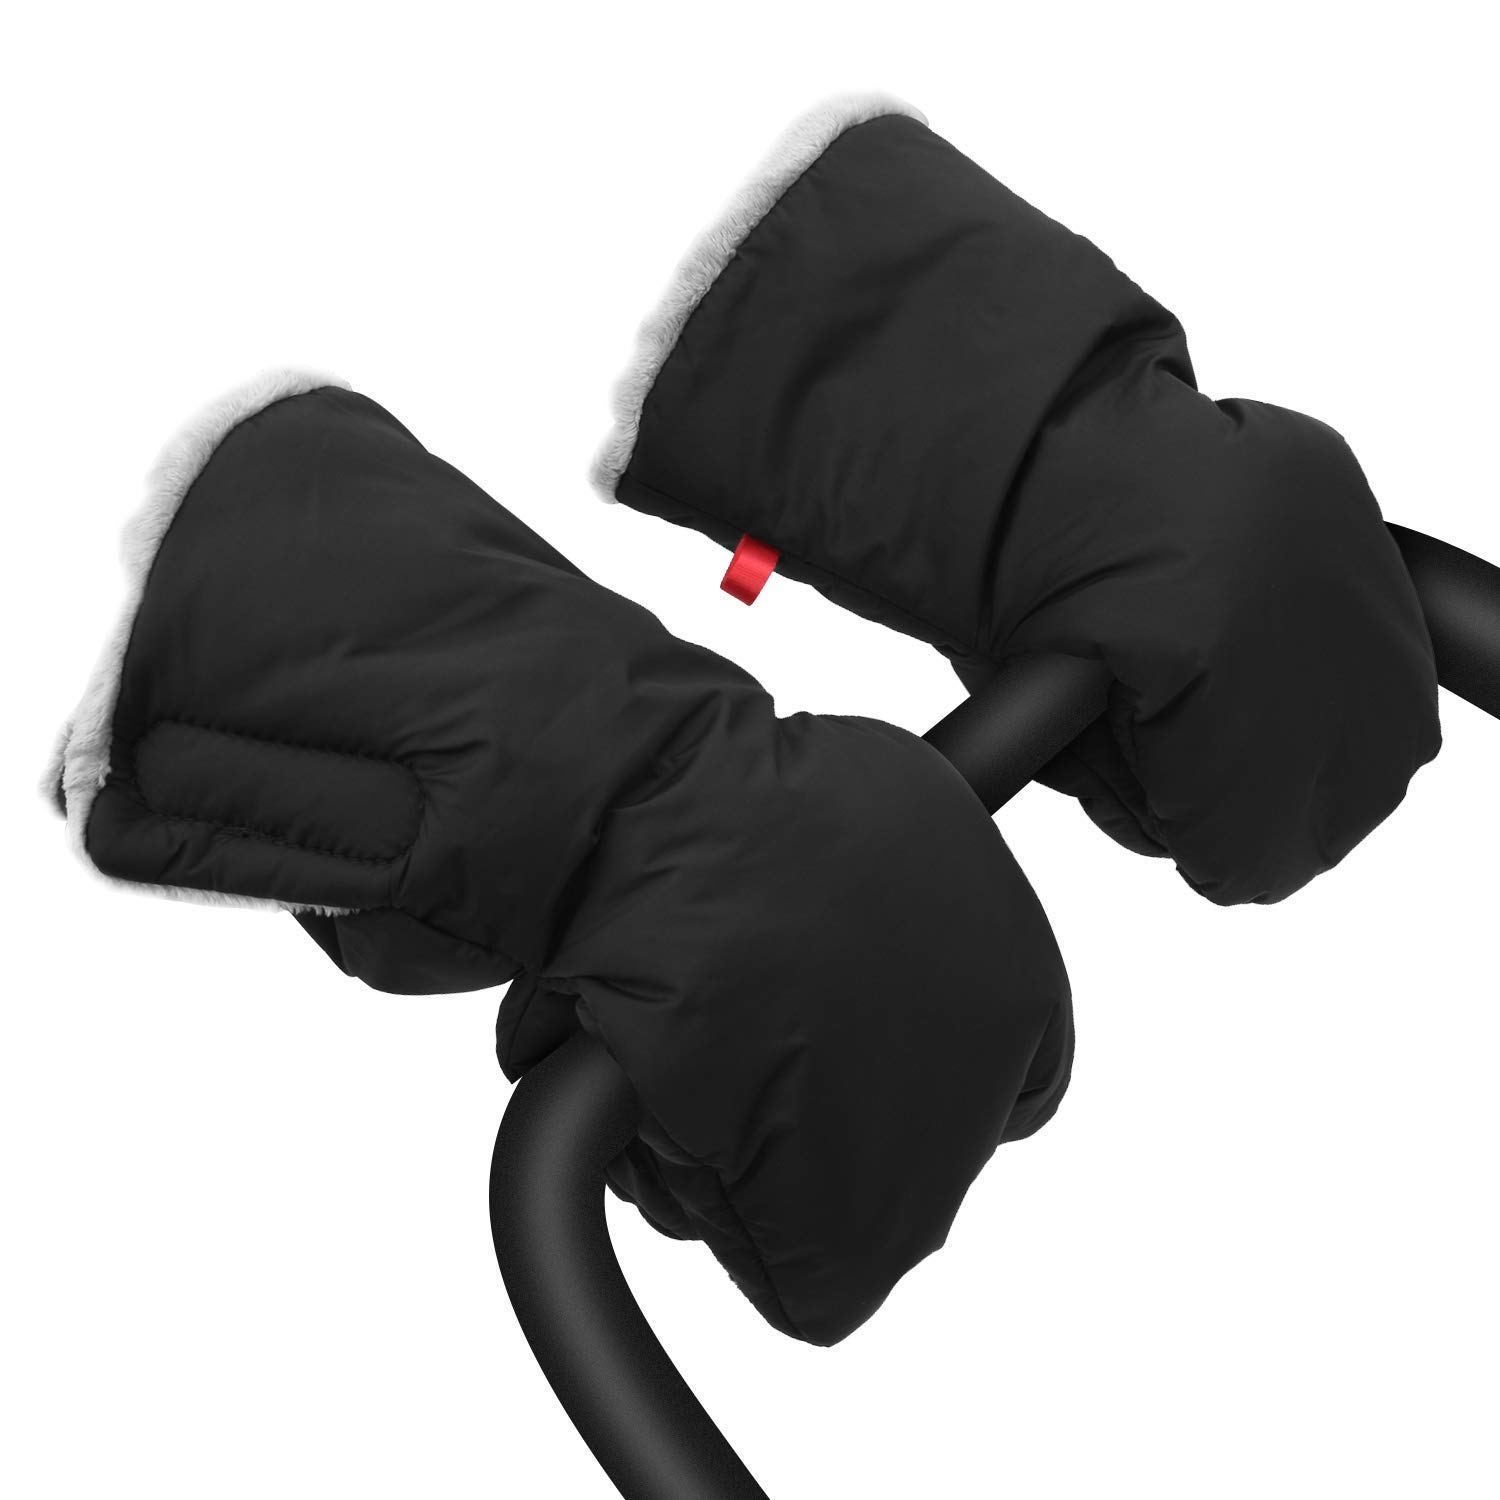 Merya Stroller Hand Muff Gloves Extra Thick Waterproof Anti-freeze Pushchair Gloves, Winter Stroller Mittens Warmer for Parents and Caregivers (Black) by Merya